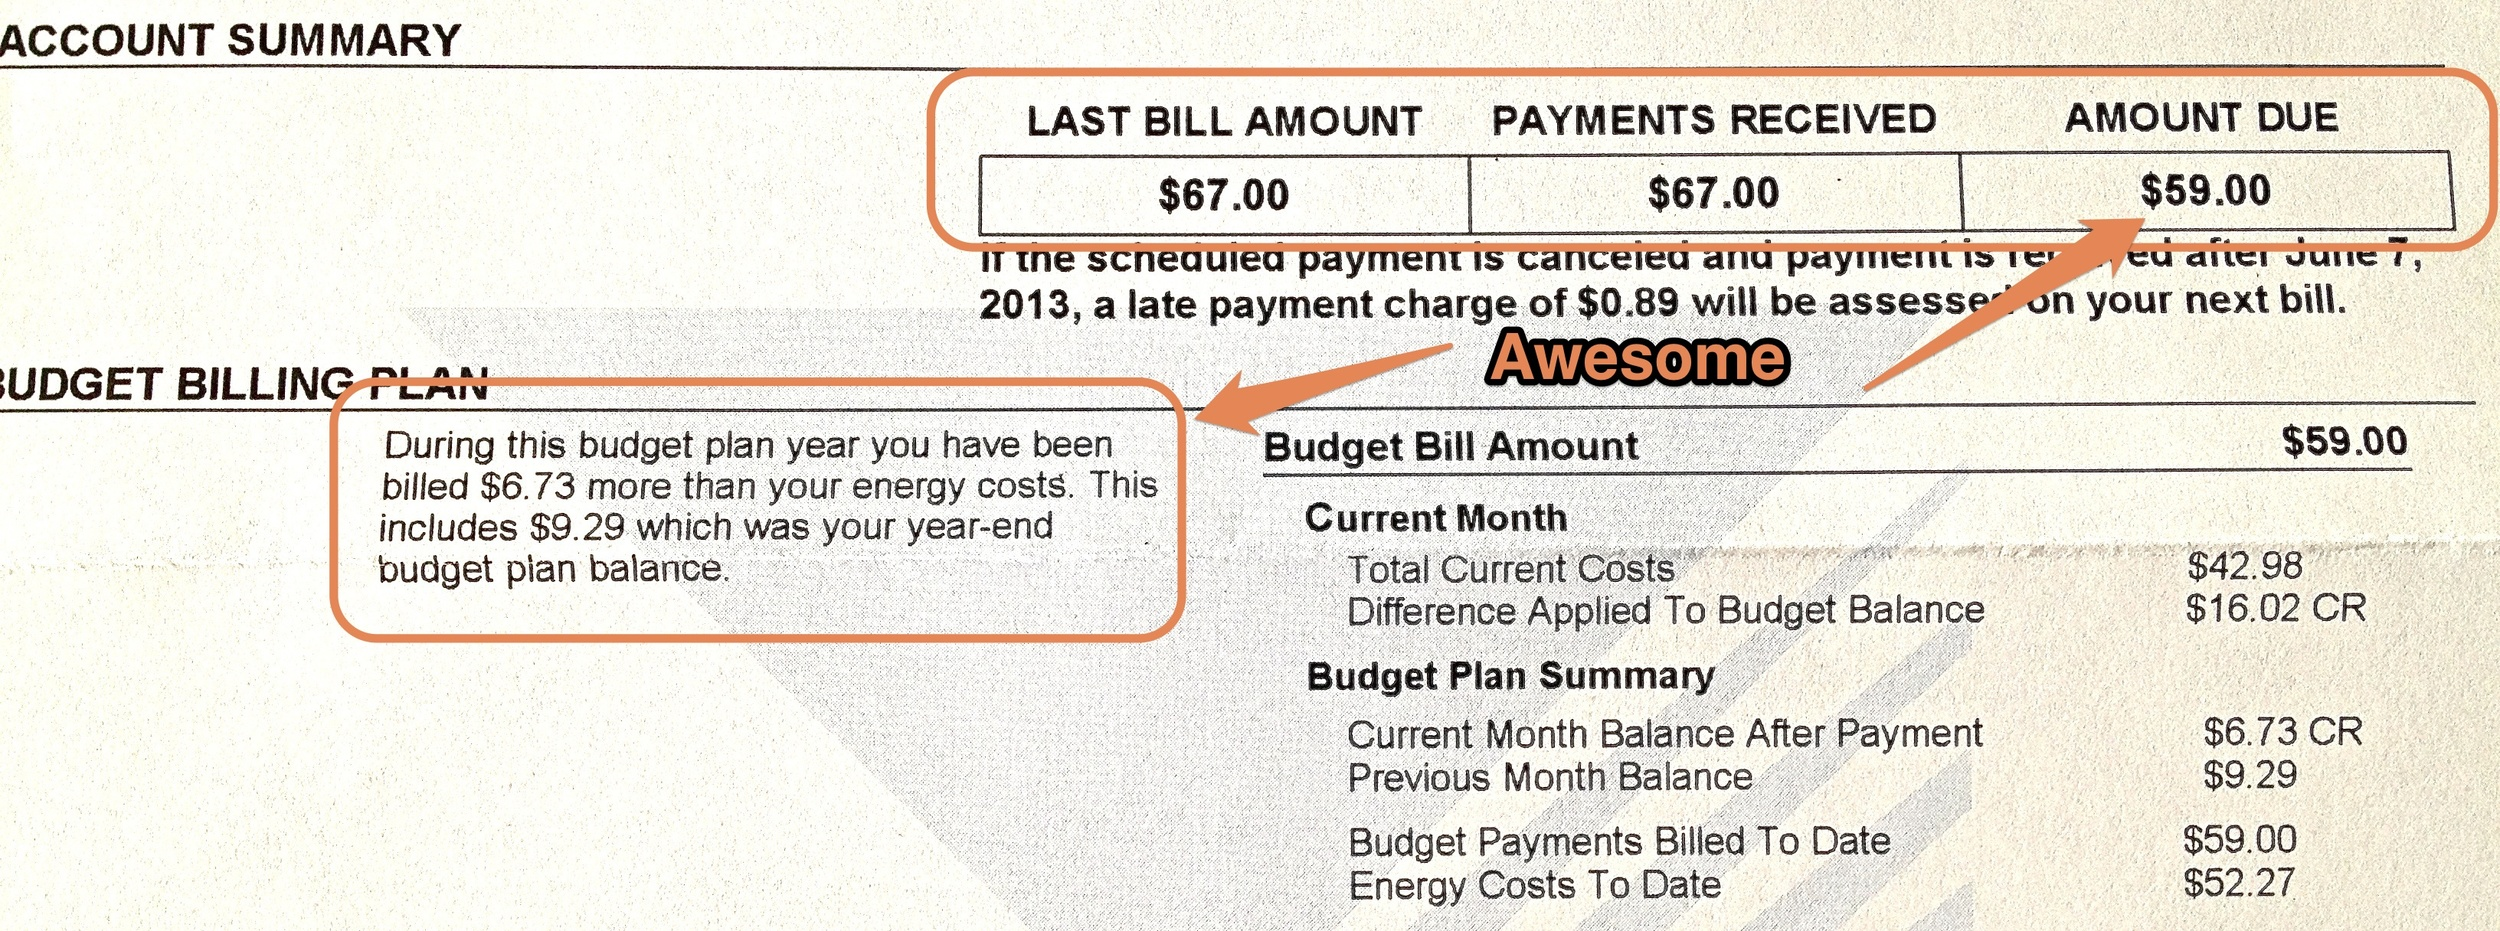 Budget Billing Cycle